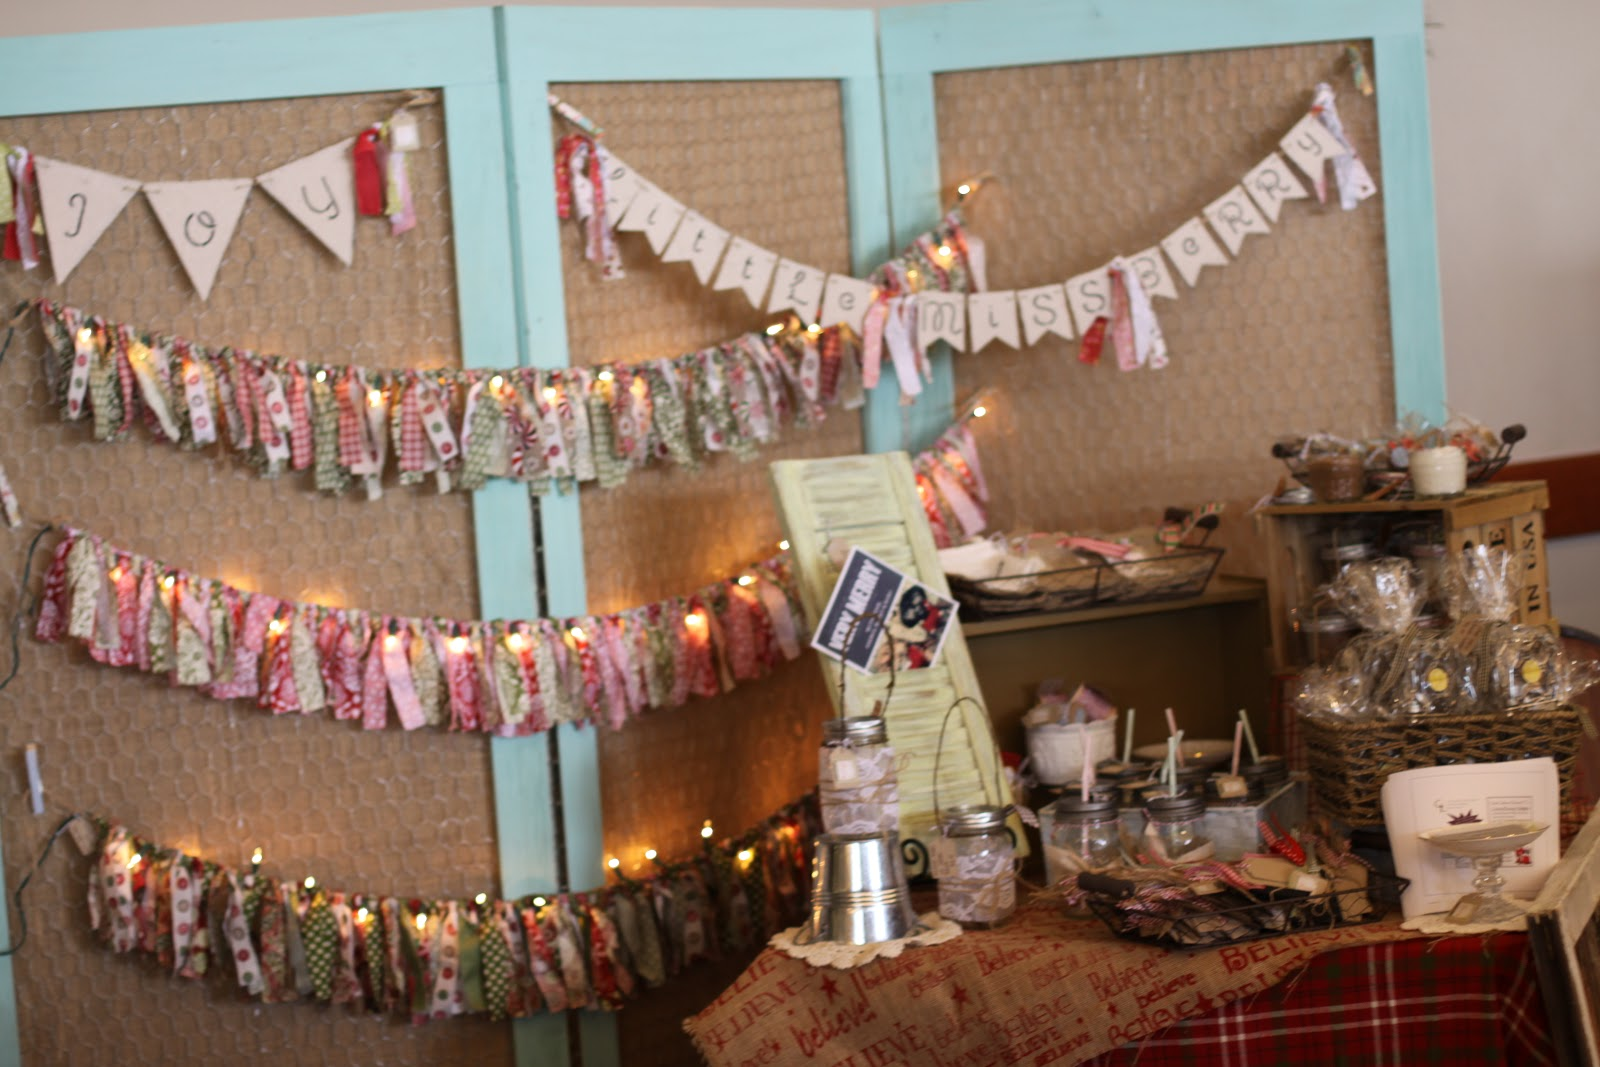 Little penelope lane holiday boutique recap for Holiday boutique